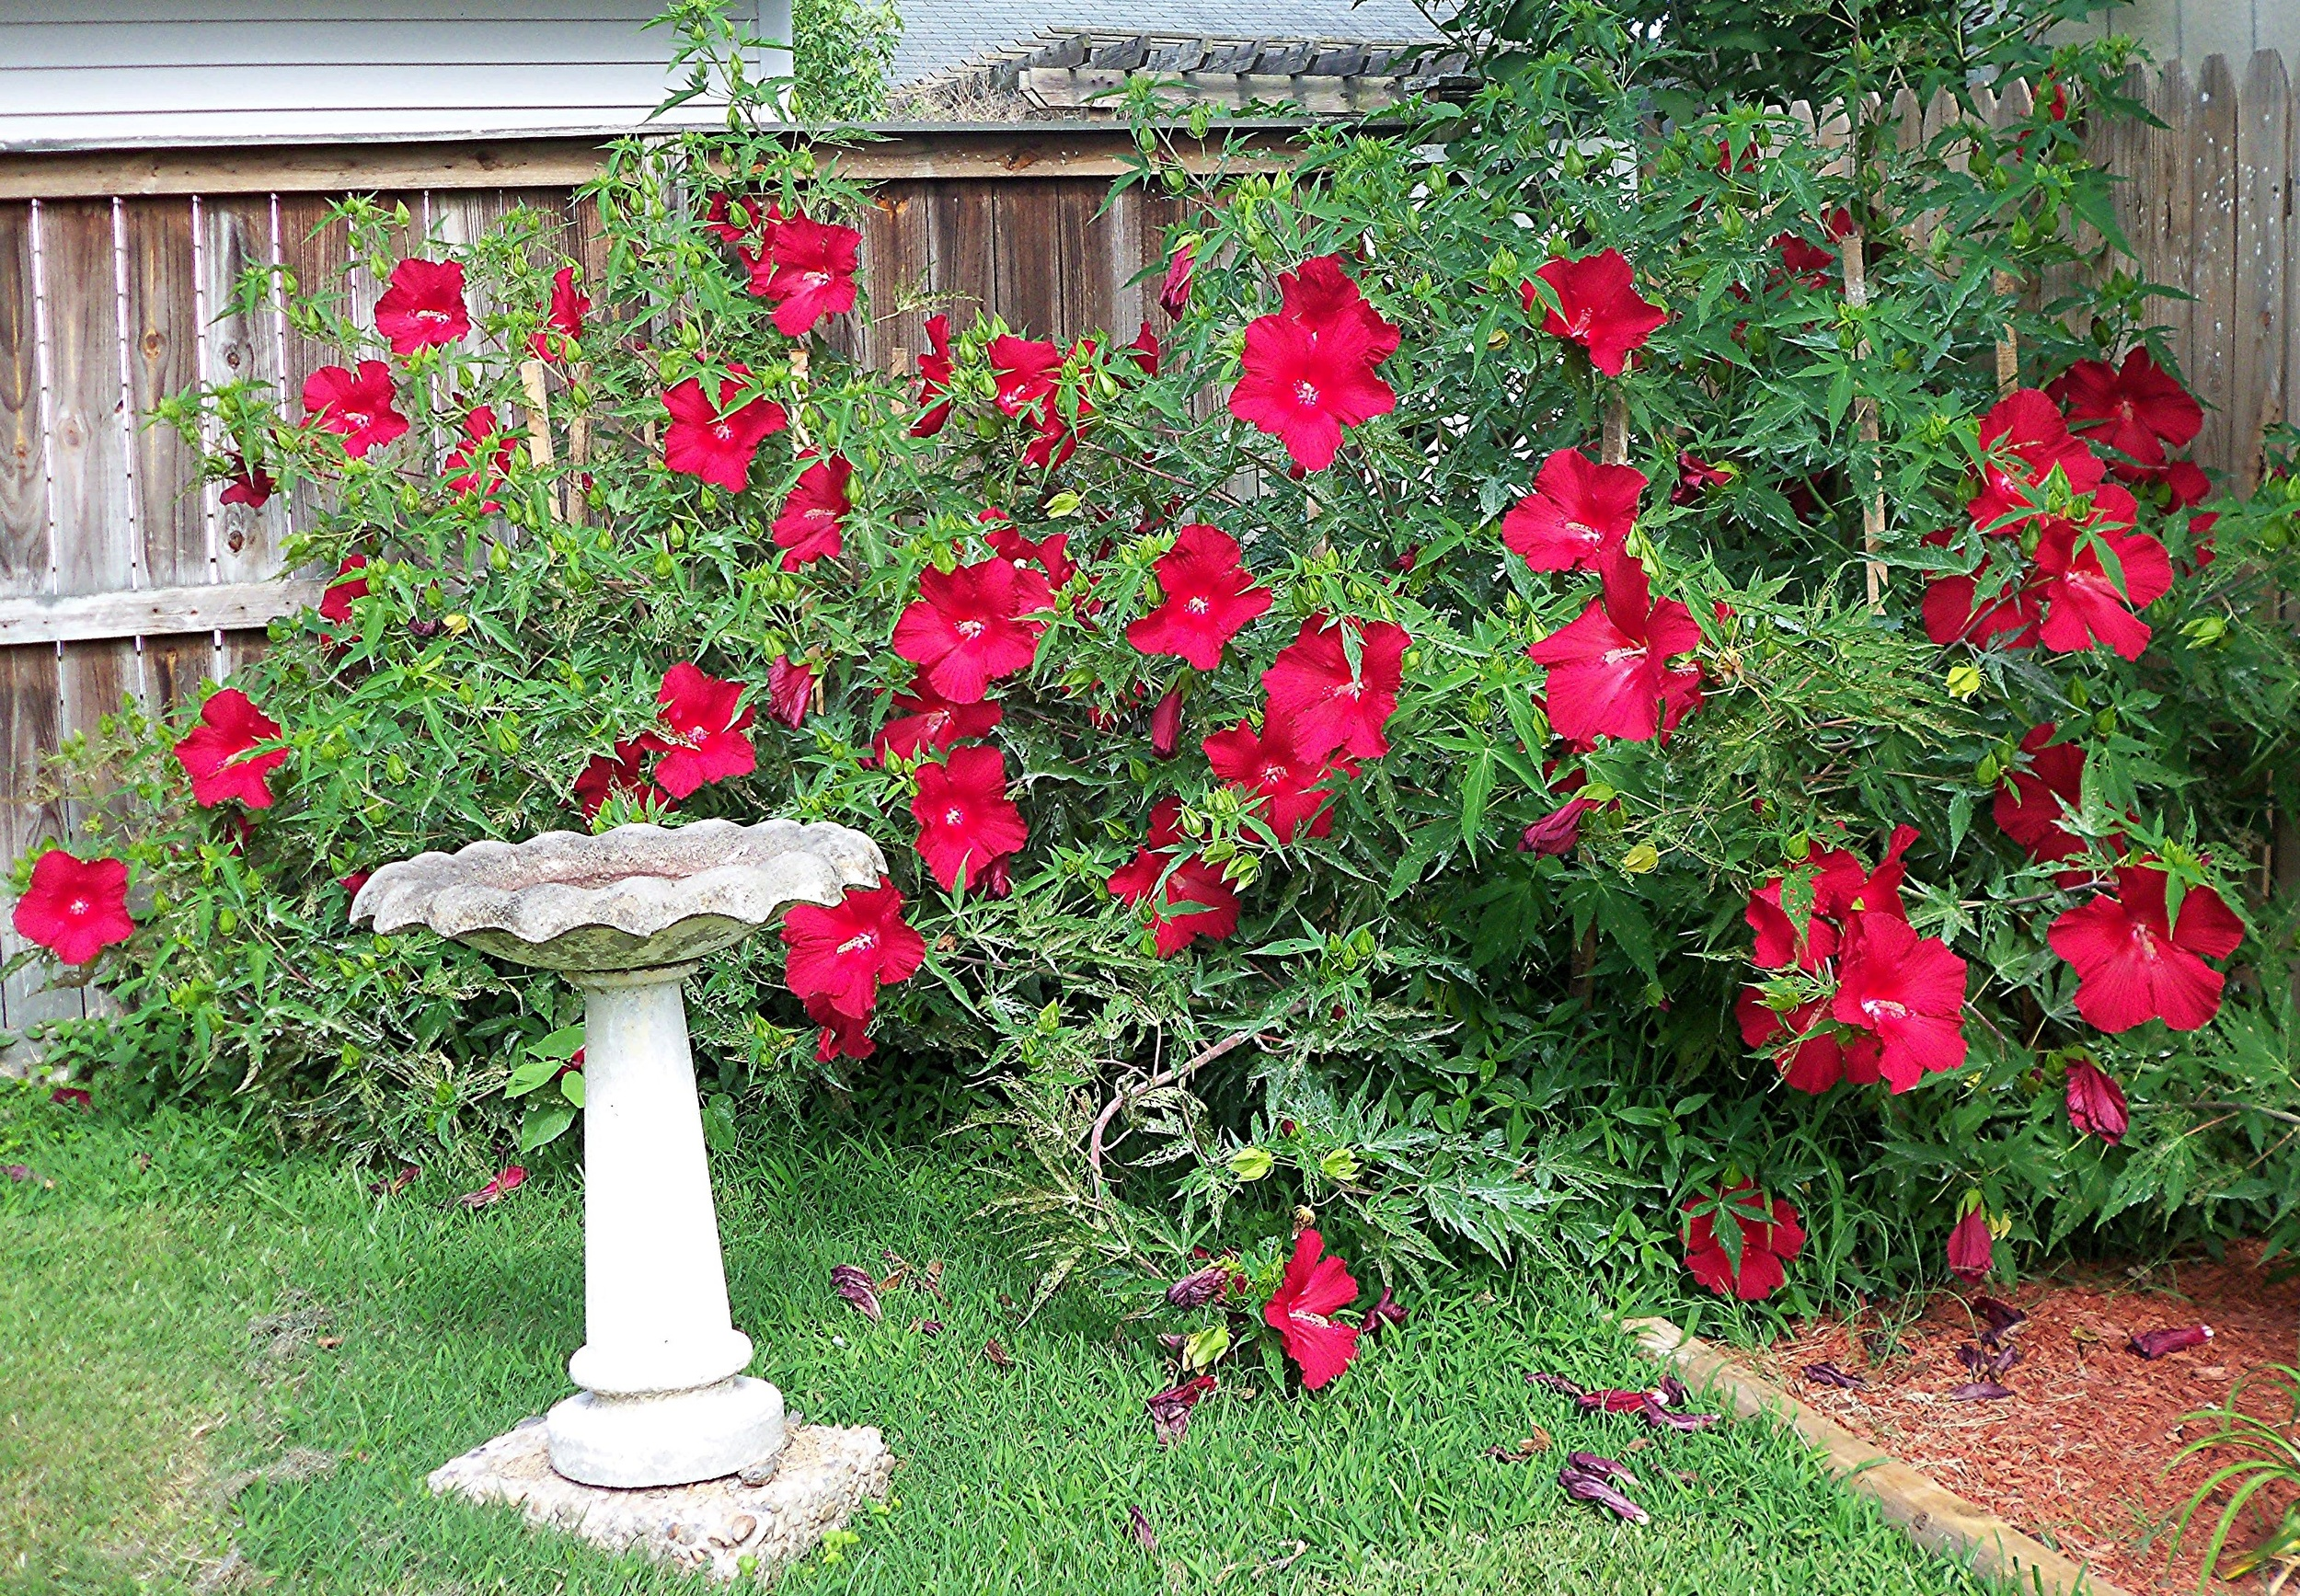 Hardy Hibiscus moscheutos 'Lord Baltimore' by Va.Rose/CC BY